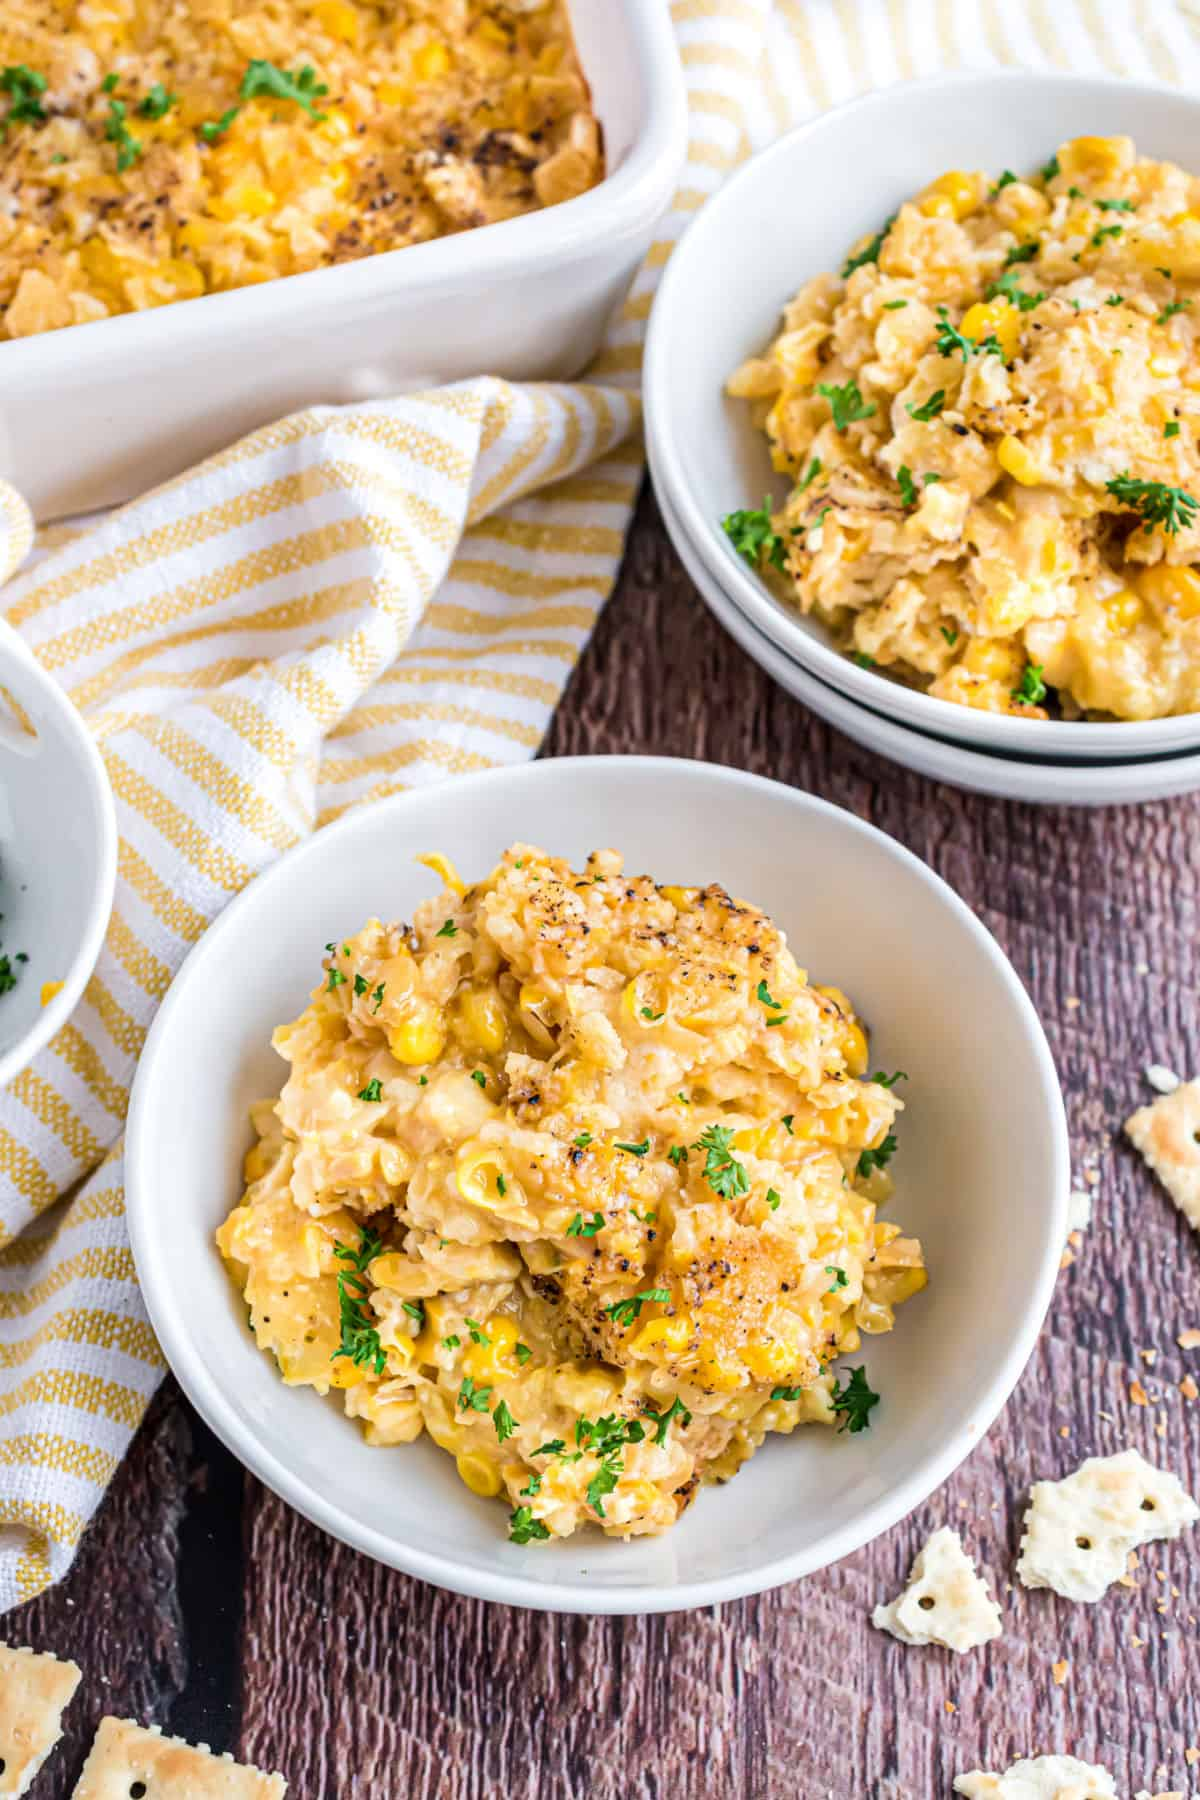 Corn casserole in small white bowls for serving.